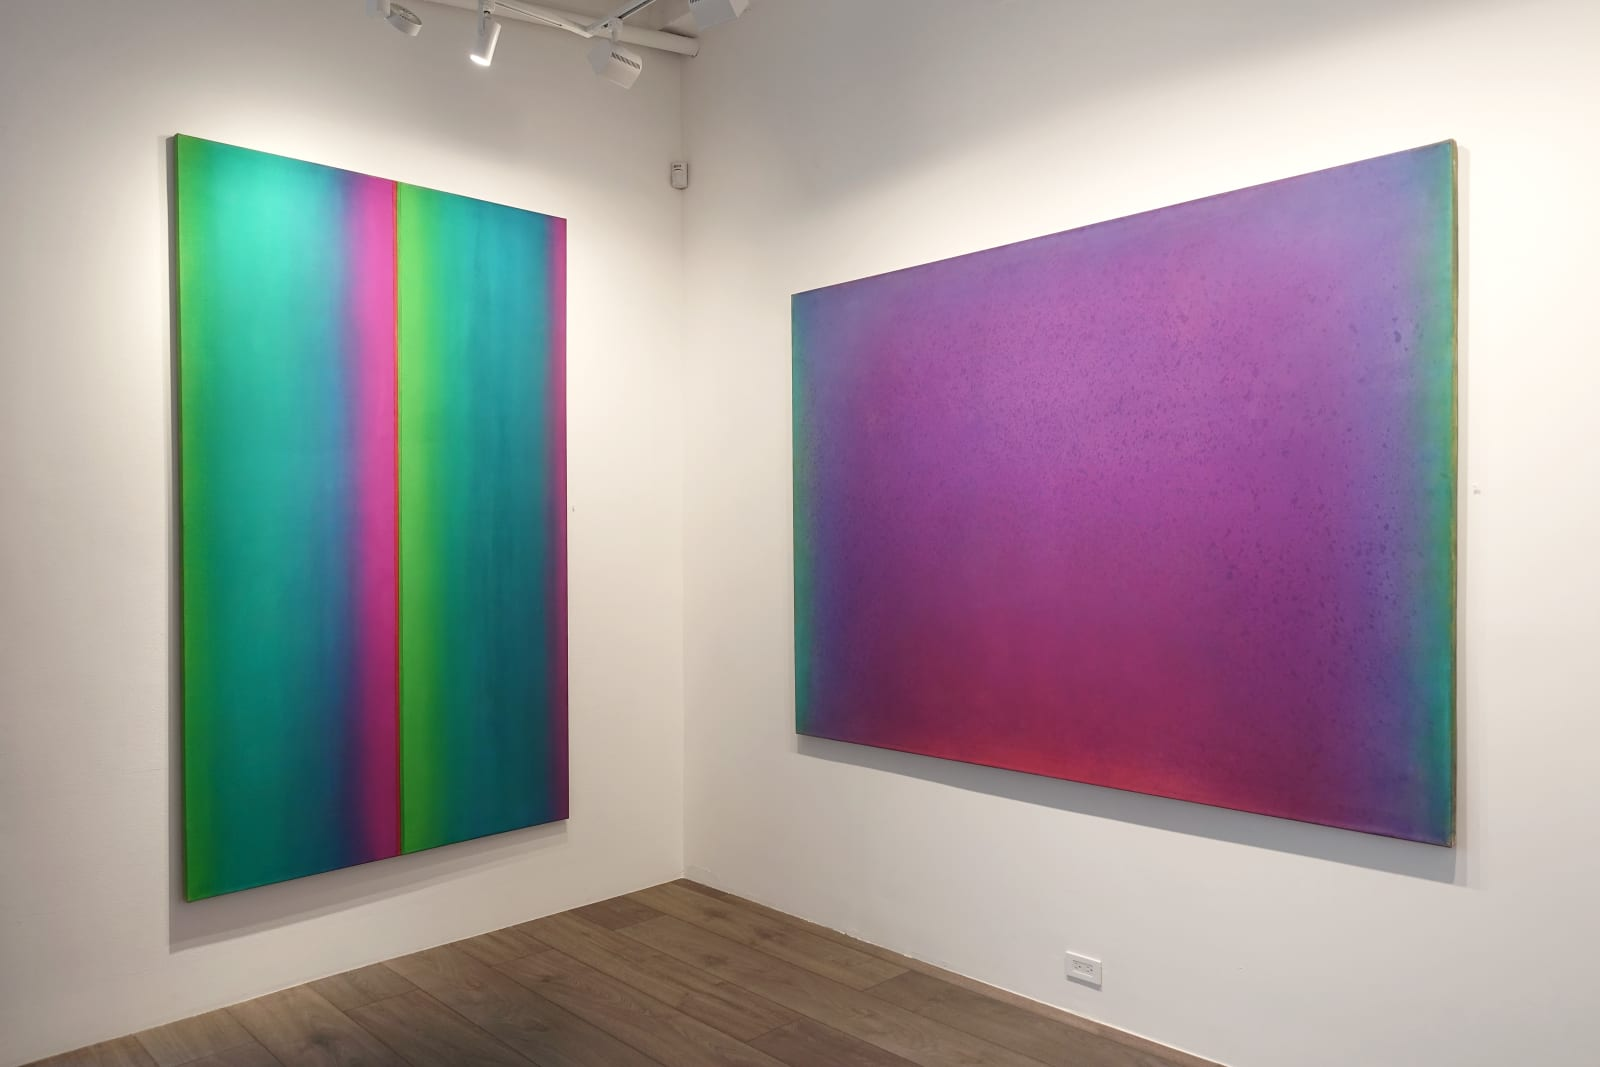 Installation view: Thresholds of Perceptibility: The Color Field Paintings of Leon Berkowitz